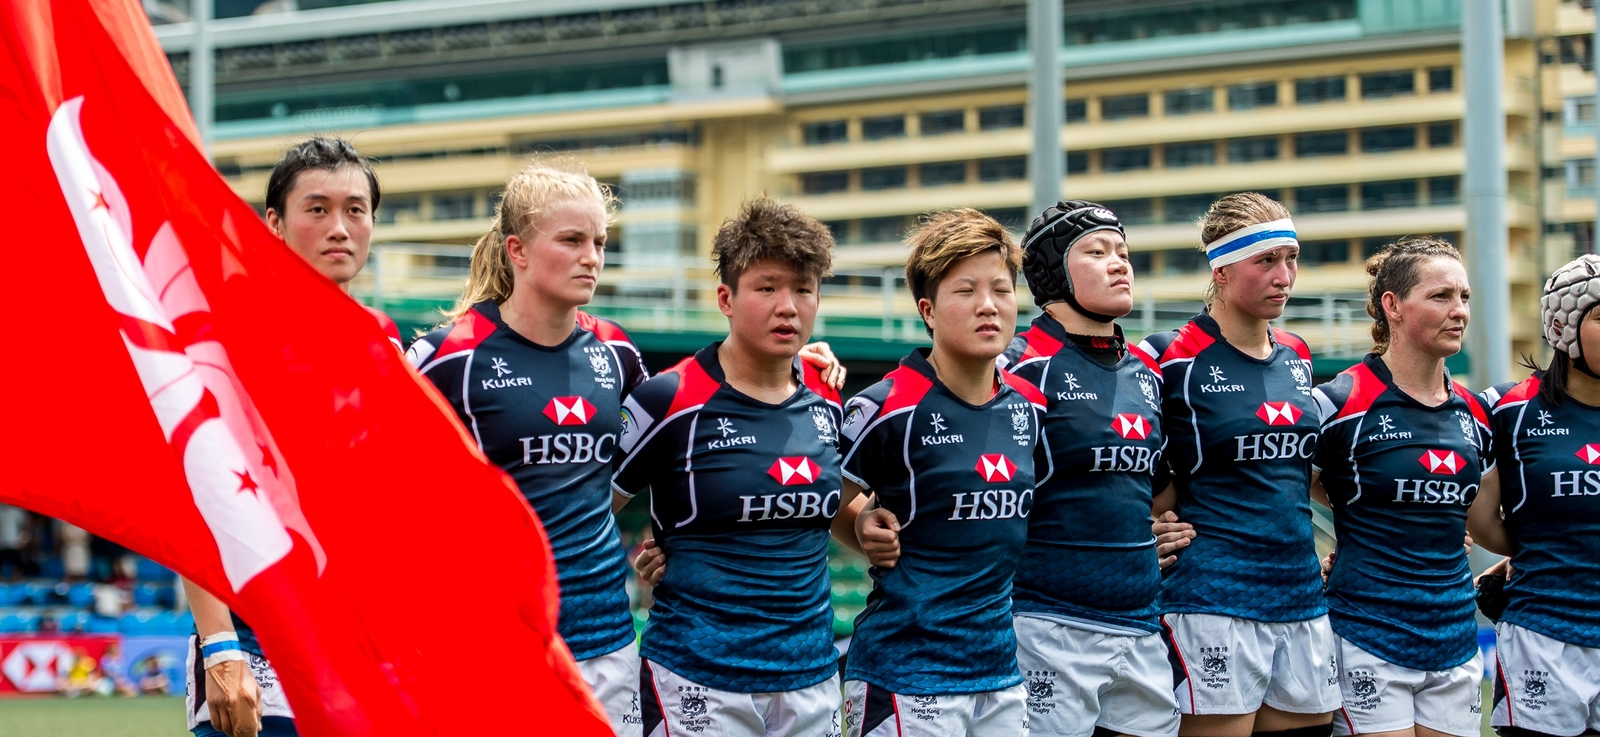 2017 05 kickoff time for national championship game - Hong Kong Kick Off Final Warm Up For Rugby World Cup 2017 Against Japan